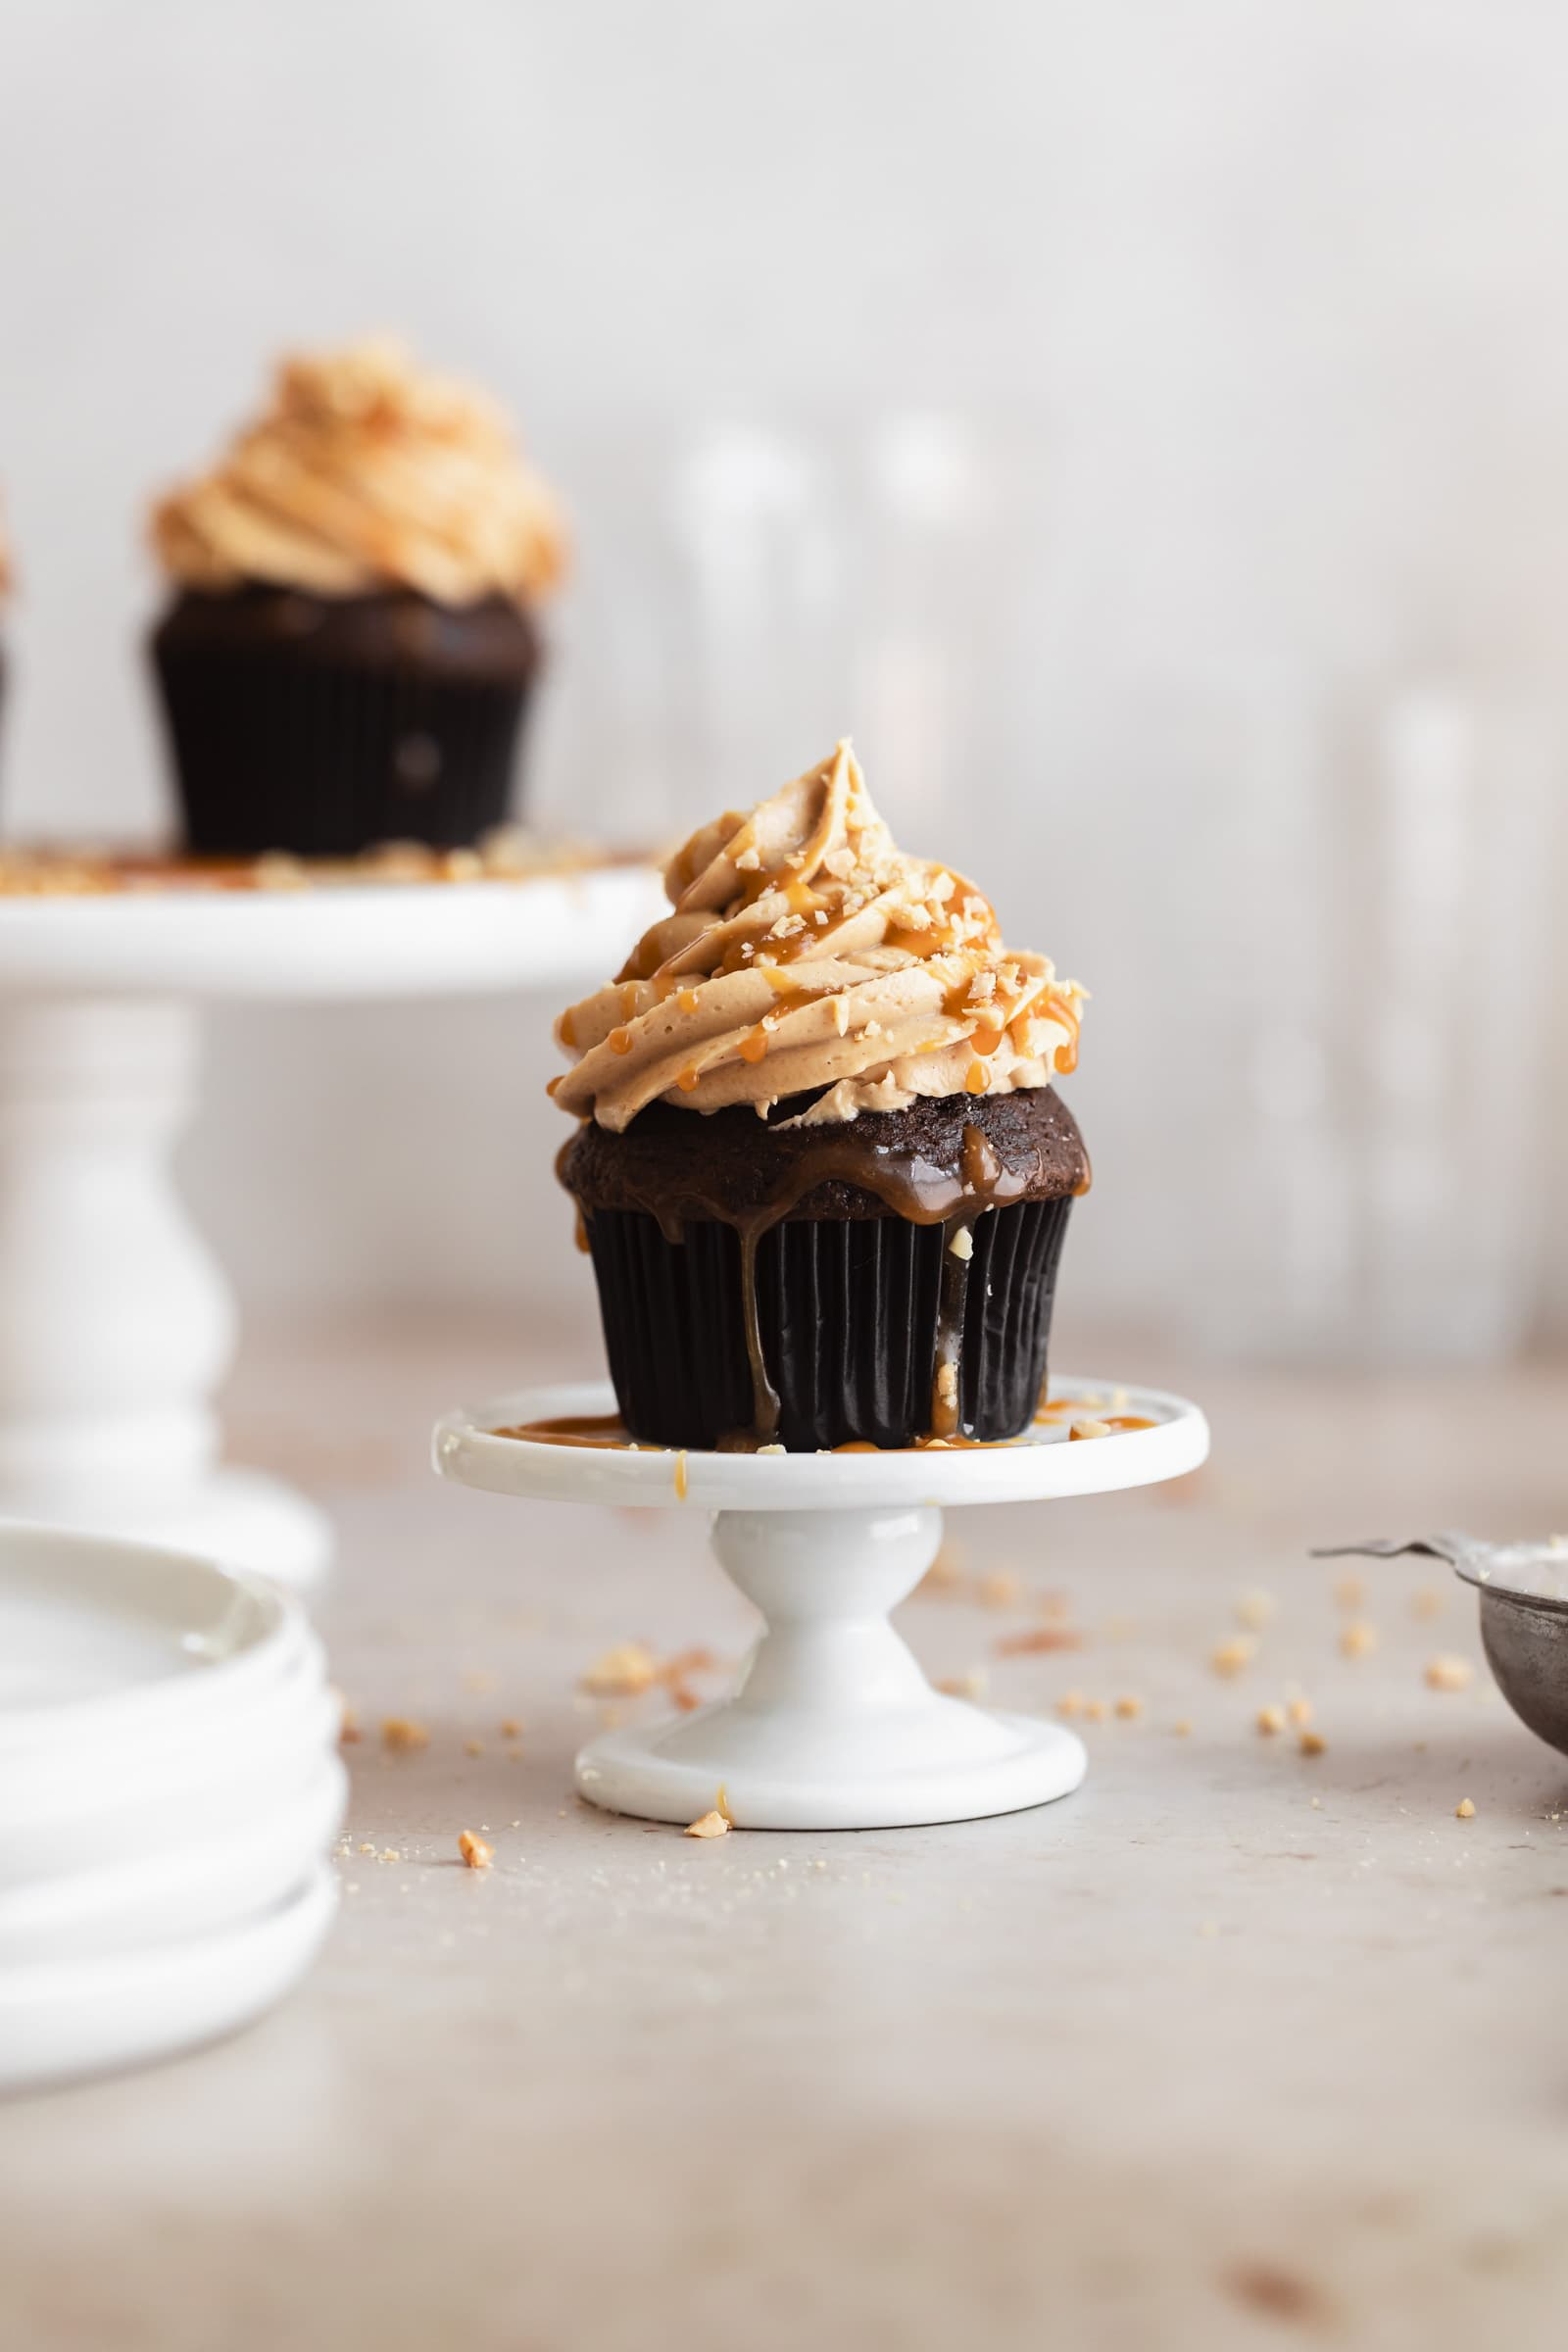 chocolate peanut butter cupcakes with salted caramel drizzle